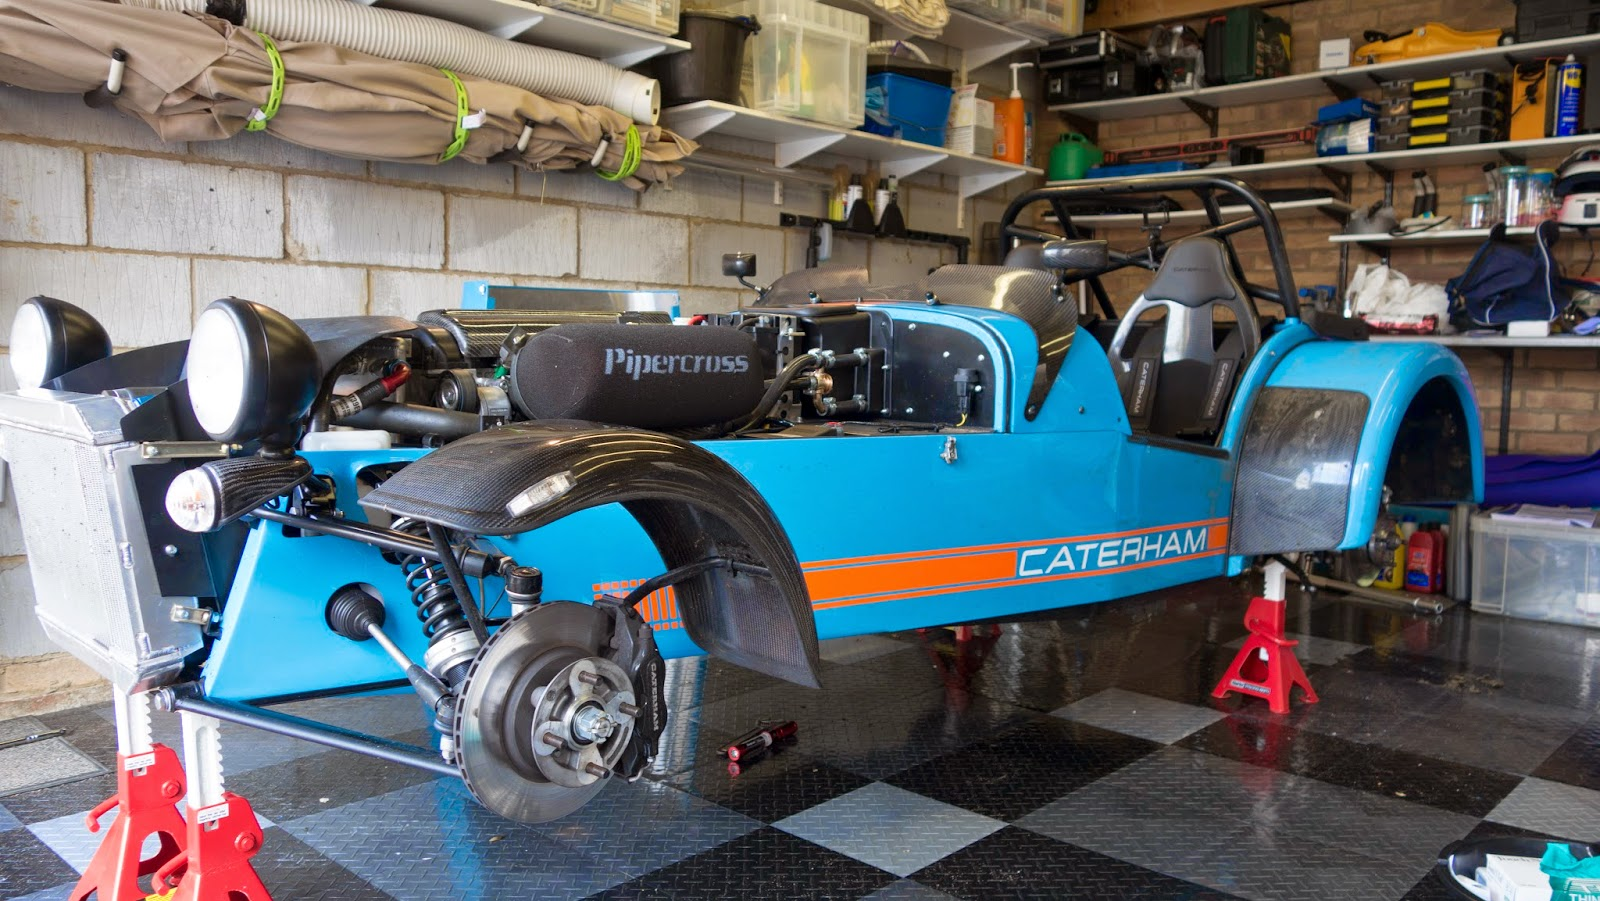 Caterham R500 after wales blat with wheels off ready for cleaning and spanner check.